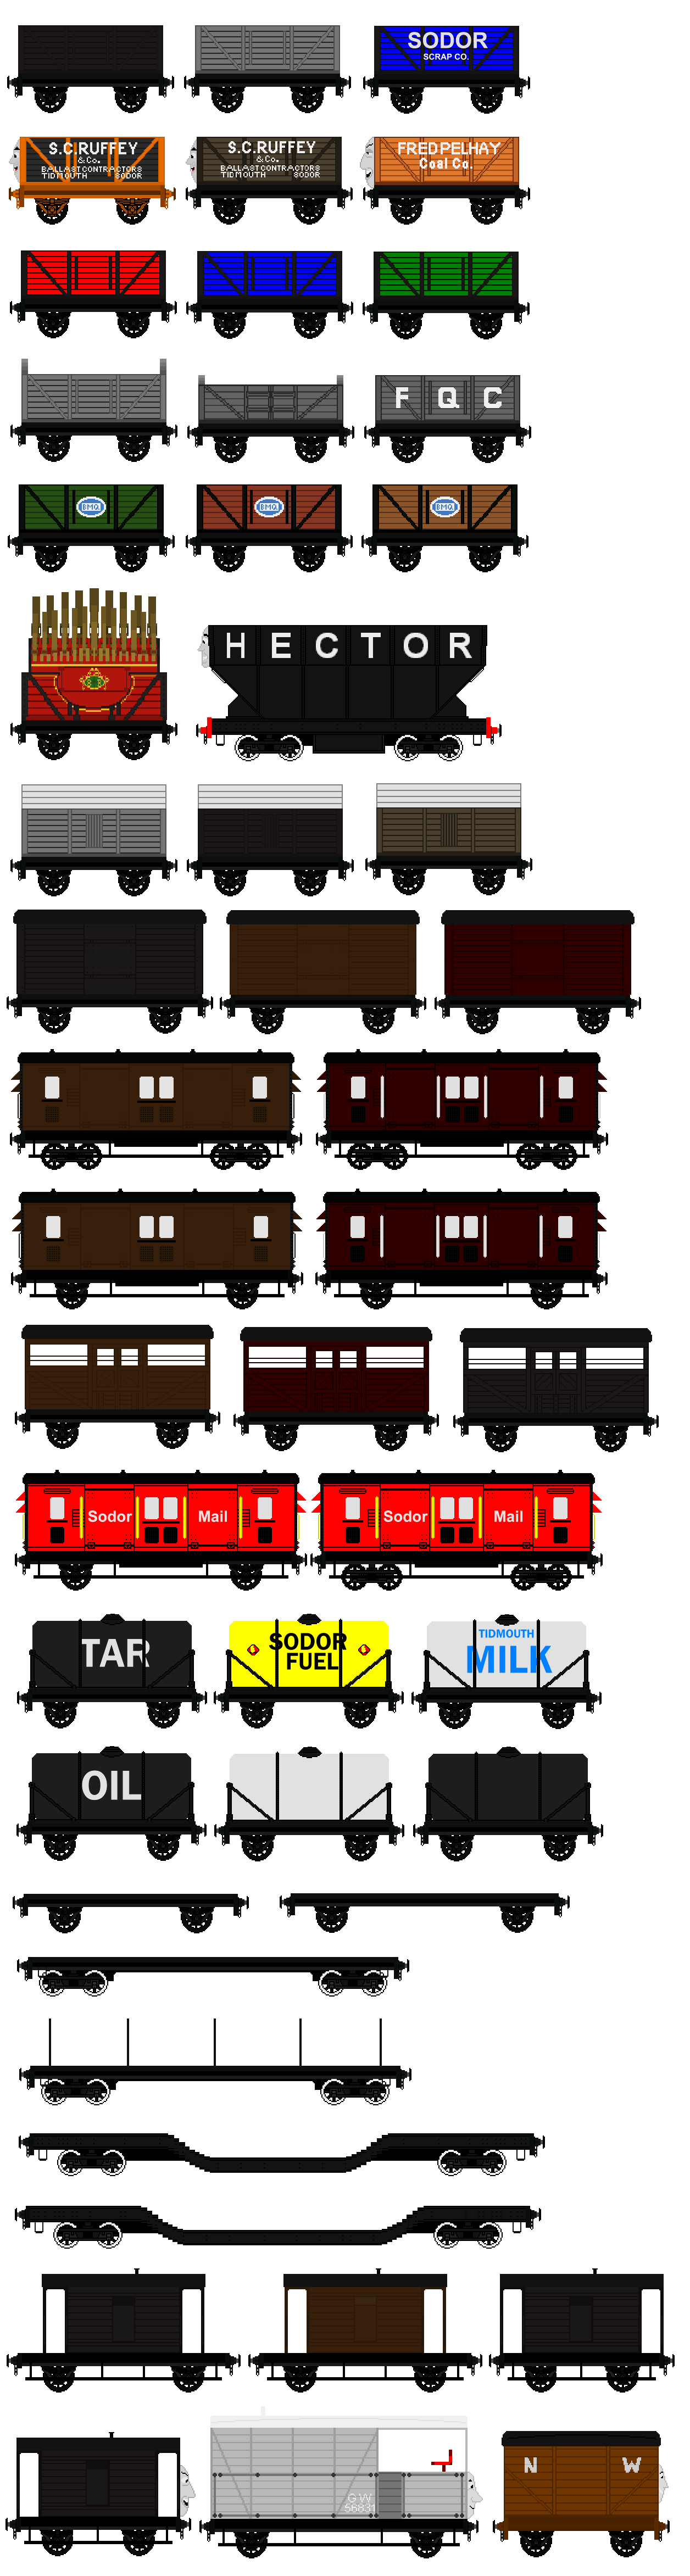 Thomas And Friends Sprites Www Topsimages Com